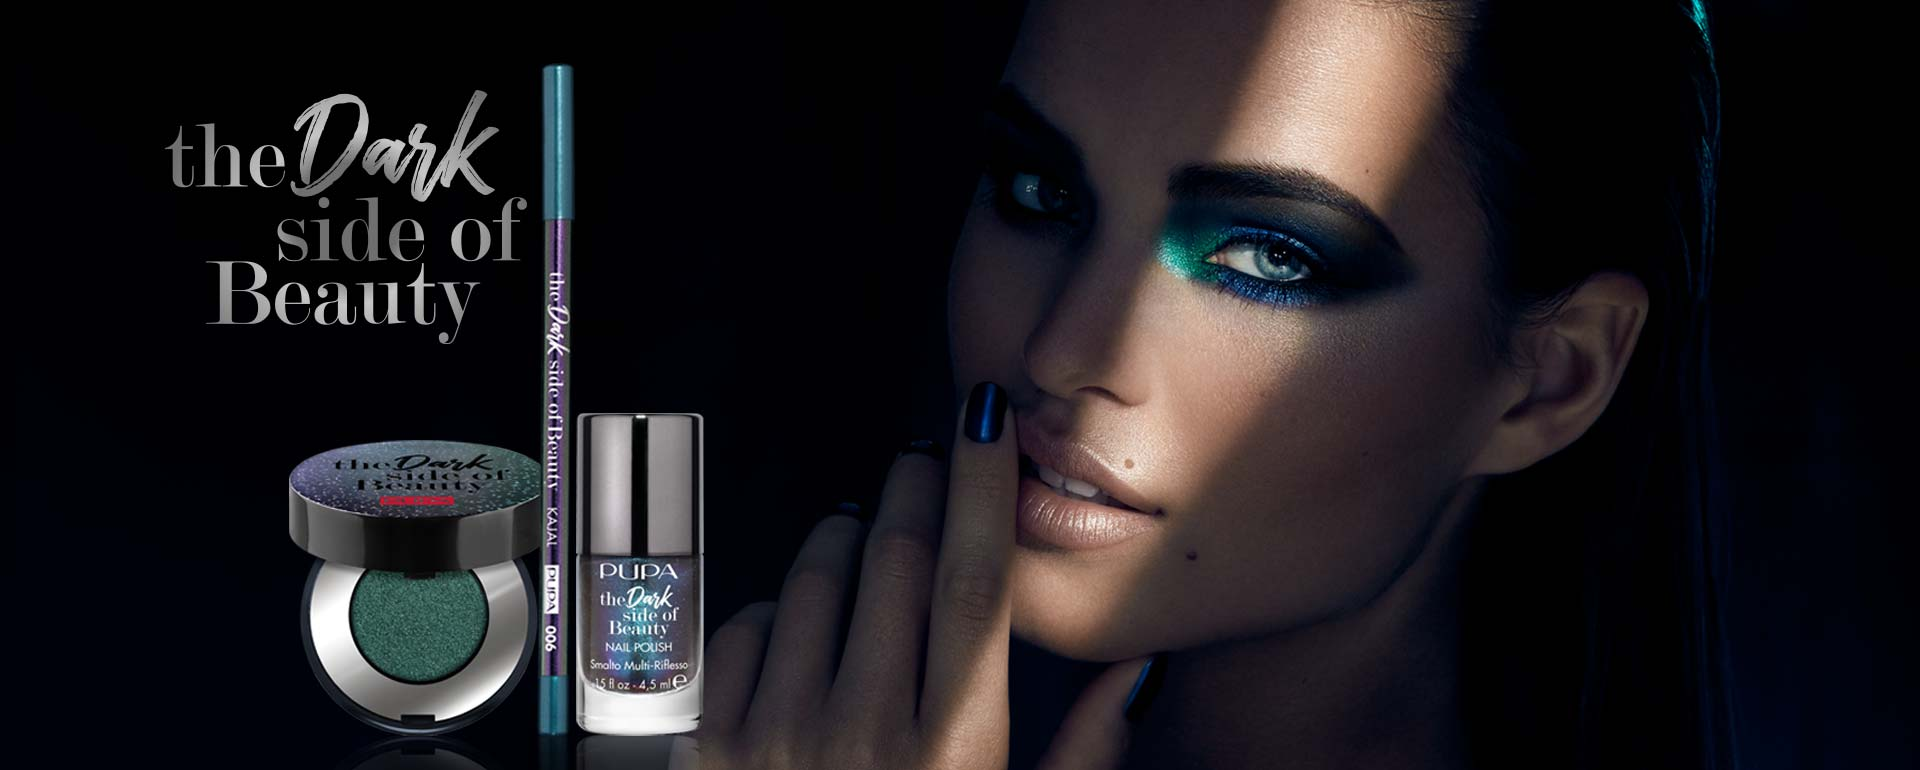 The Dark Side of Beauty - PUPA Milano